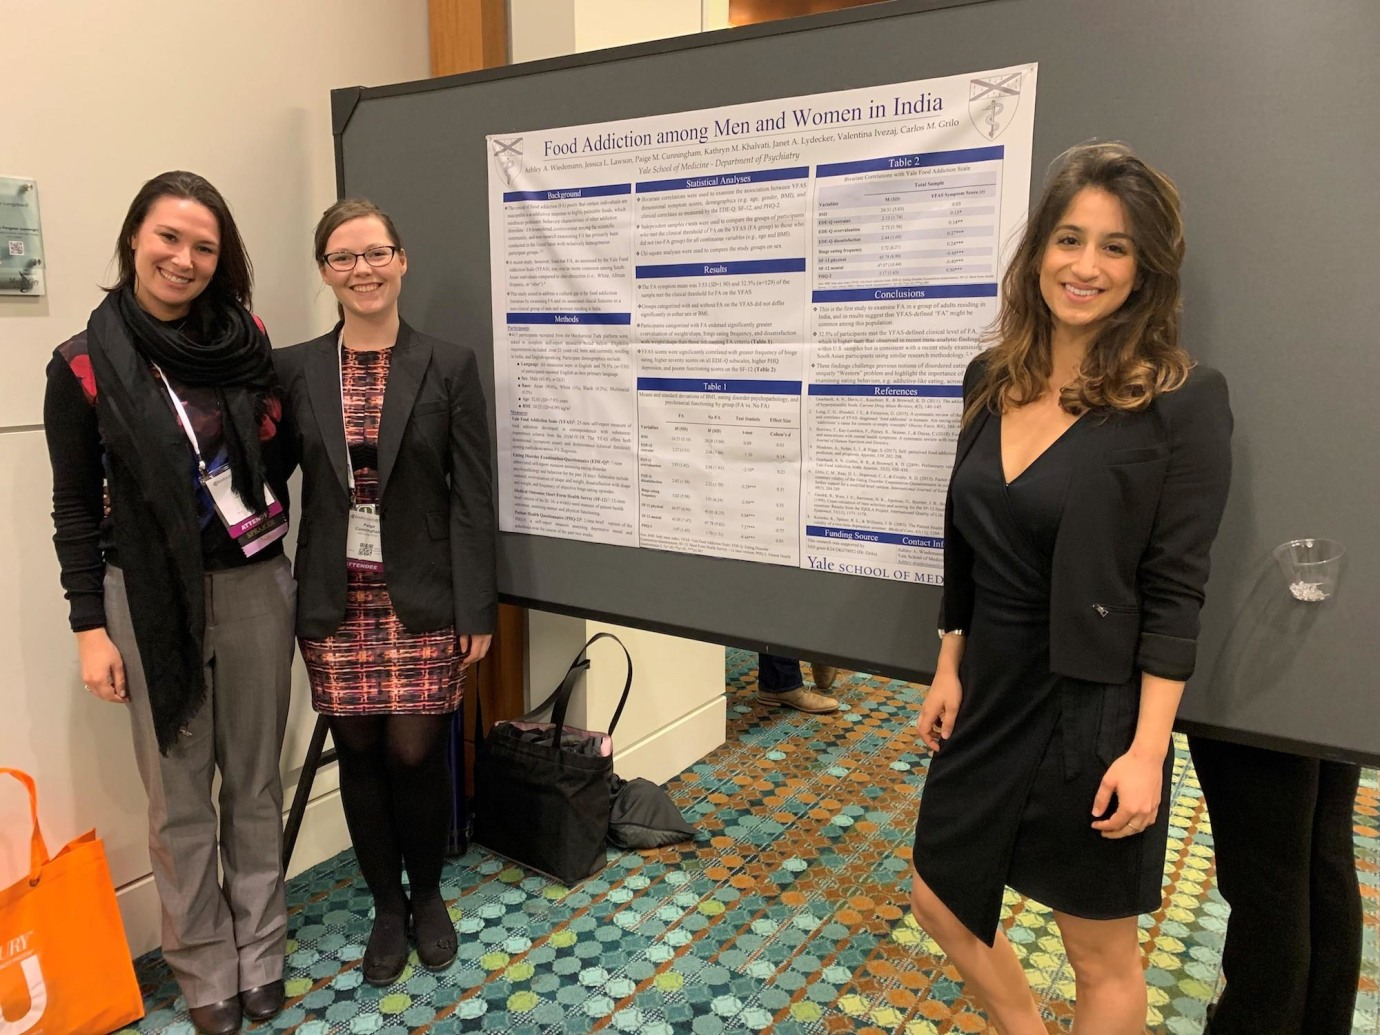 """Food Addiction among Men and Women in India,"" winner of the Diversity Section award at The Obesity Society conference in Nashville, TN. Left to right: Jessica Lawson, PhD, Paige Cunningham, BS '18, Kathy Khalvati '20."